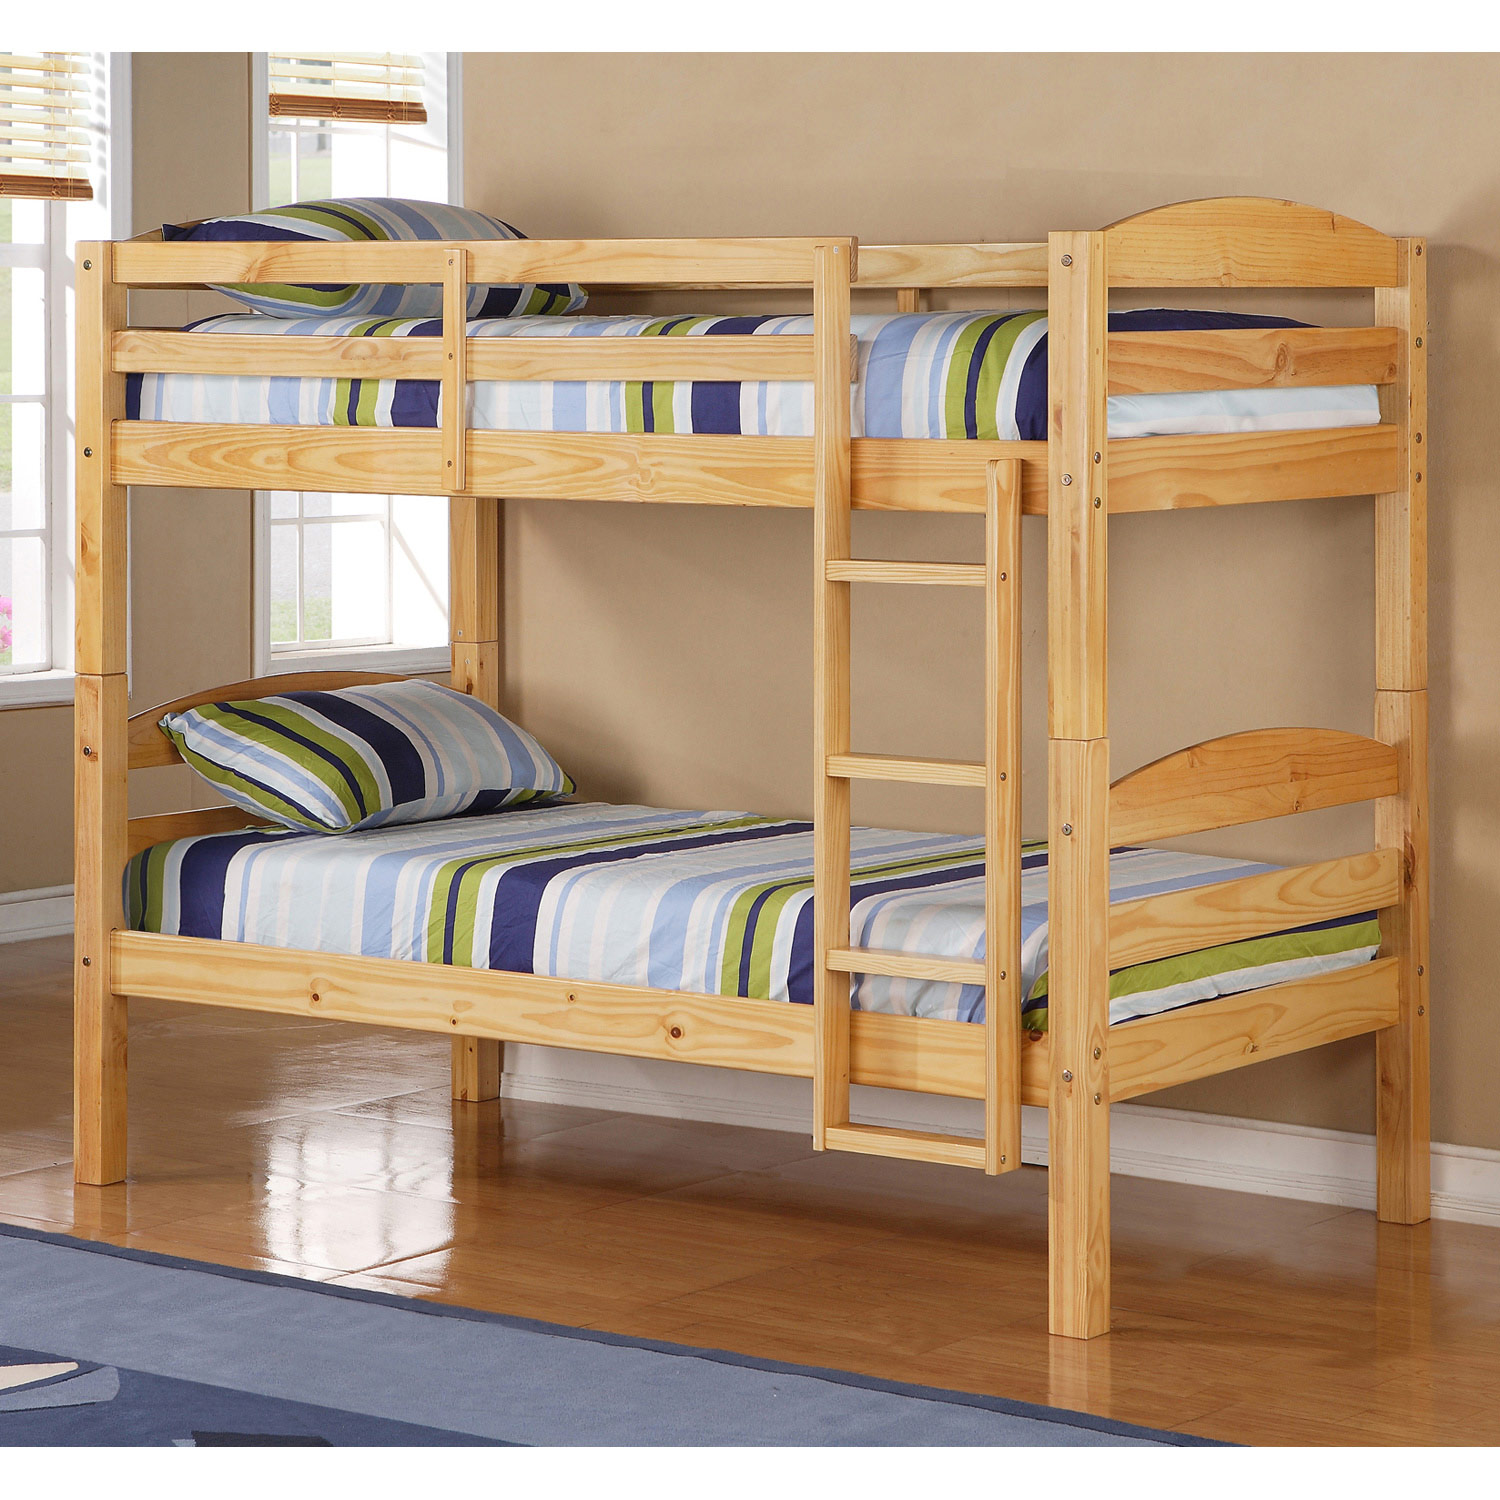 Shaker Style Twin Bunk Bed Solid Wood Natural Finish